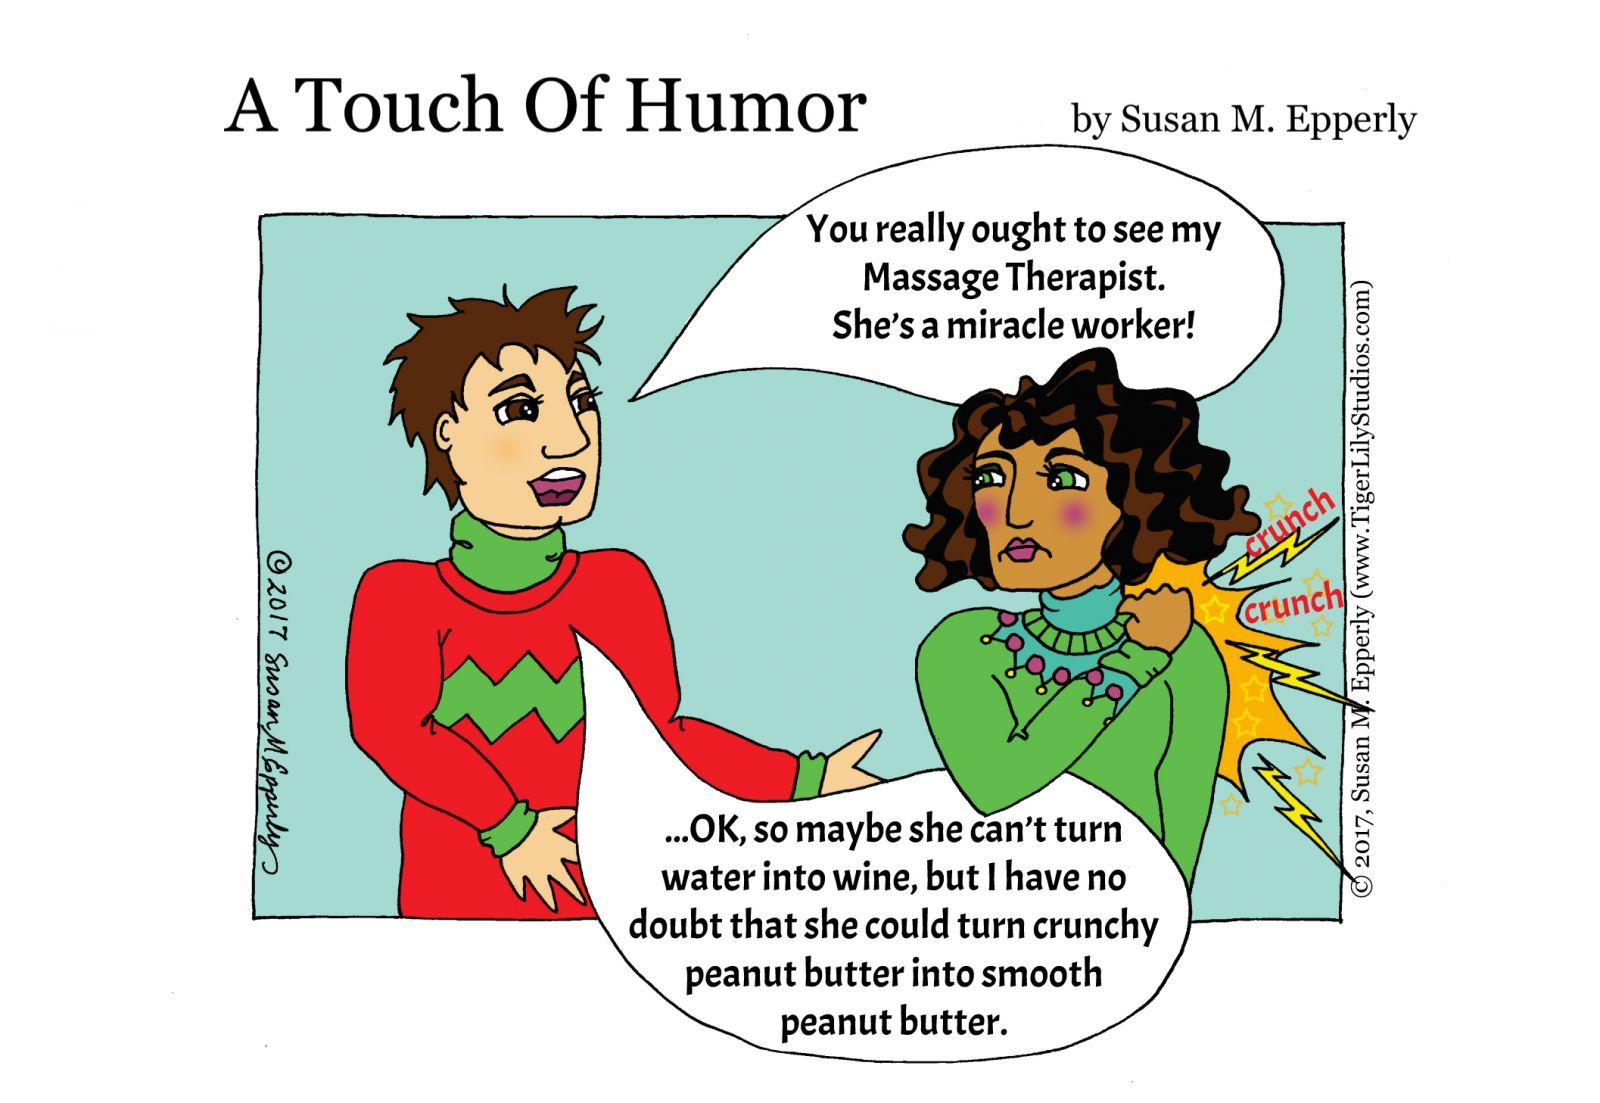 A Touch of Humor   Associated Bodywork & Massage Professionals